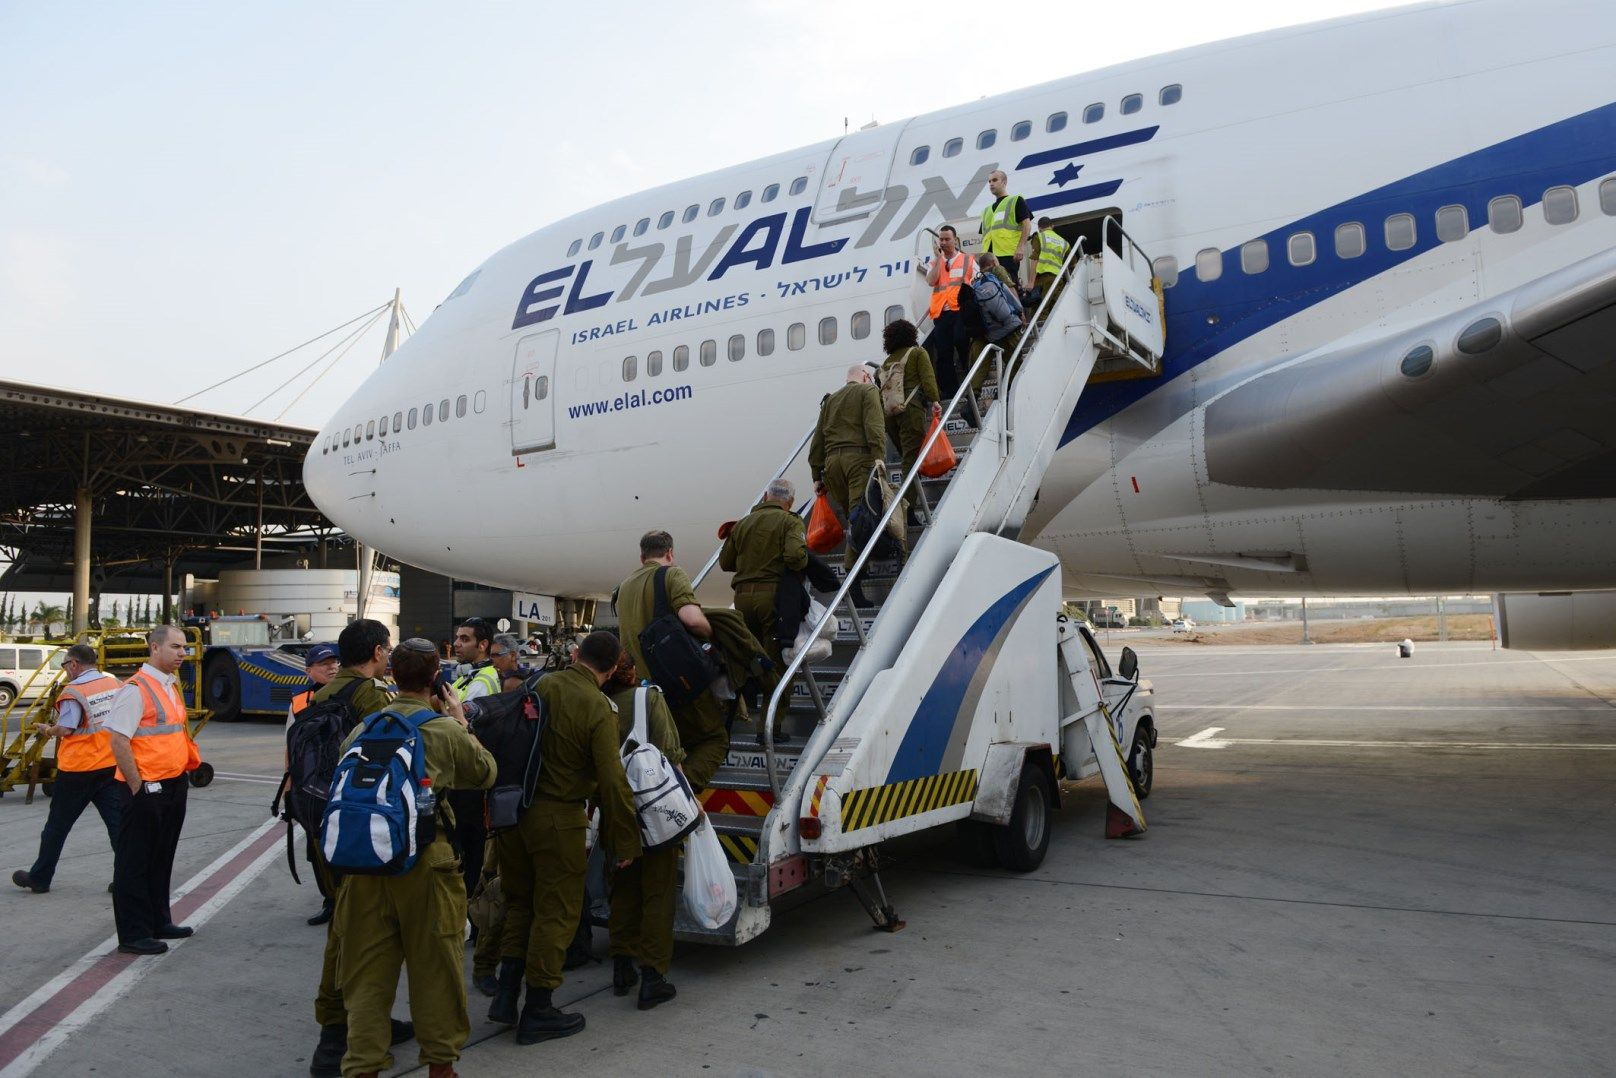 IDF rescue workers boarding an airplane to the Philippines on November 13, 2013. Photo by IDF Spokesperson/FLASH90